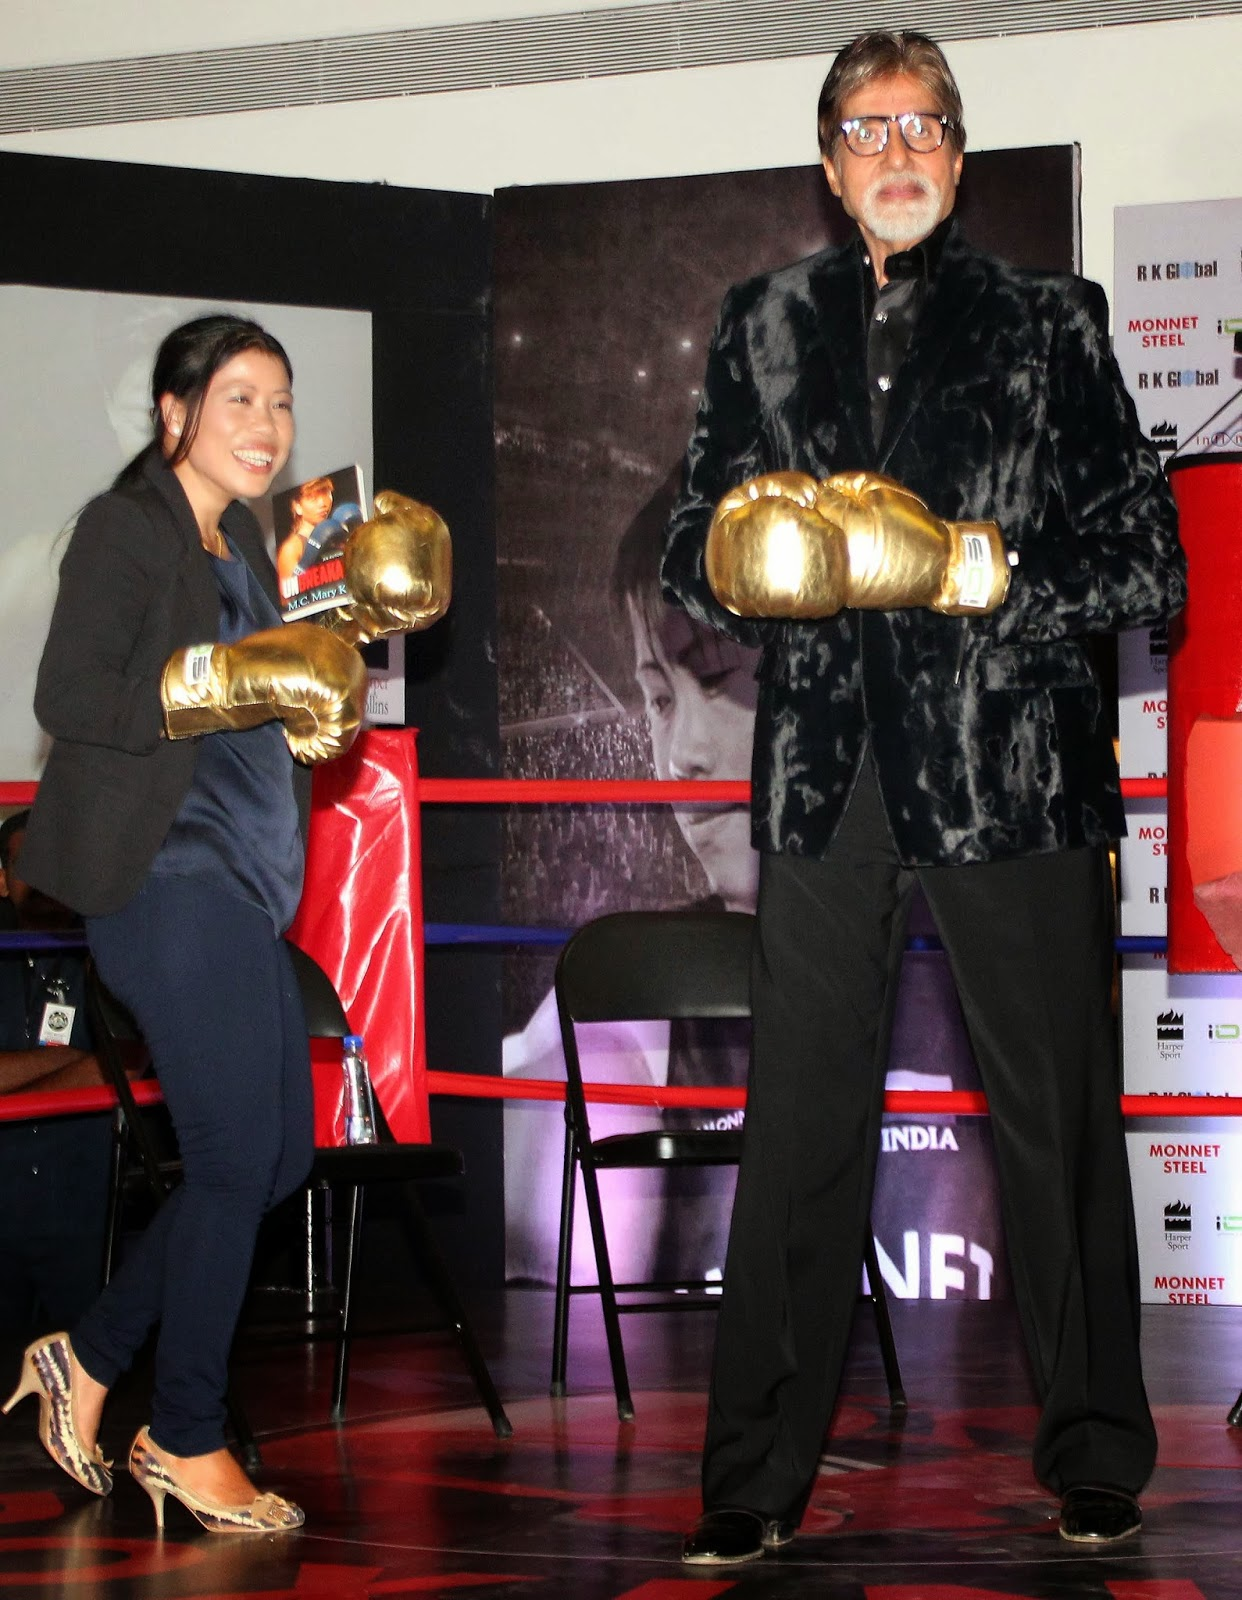 http://3.bp.blogspot.com/-lY-ZHlCSDAQ/UqdNw3NOusI/AAAAAAABmjM/RcKSR-y84WQ/s1600/Amitabh-Launch-The-Biography-Of-Olympics-Medallist-And-Boxer-Mary-Kom-47.JPG